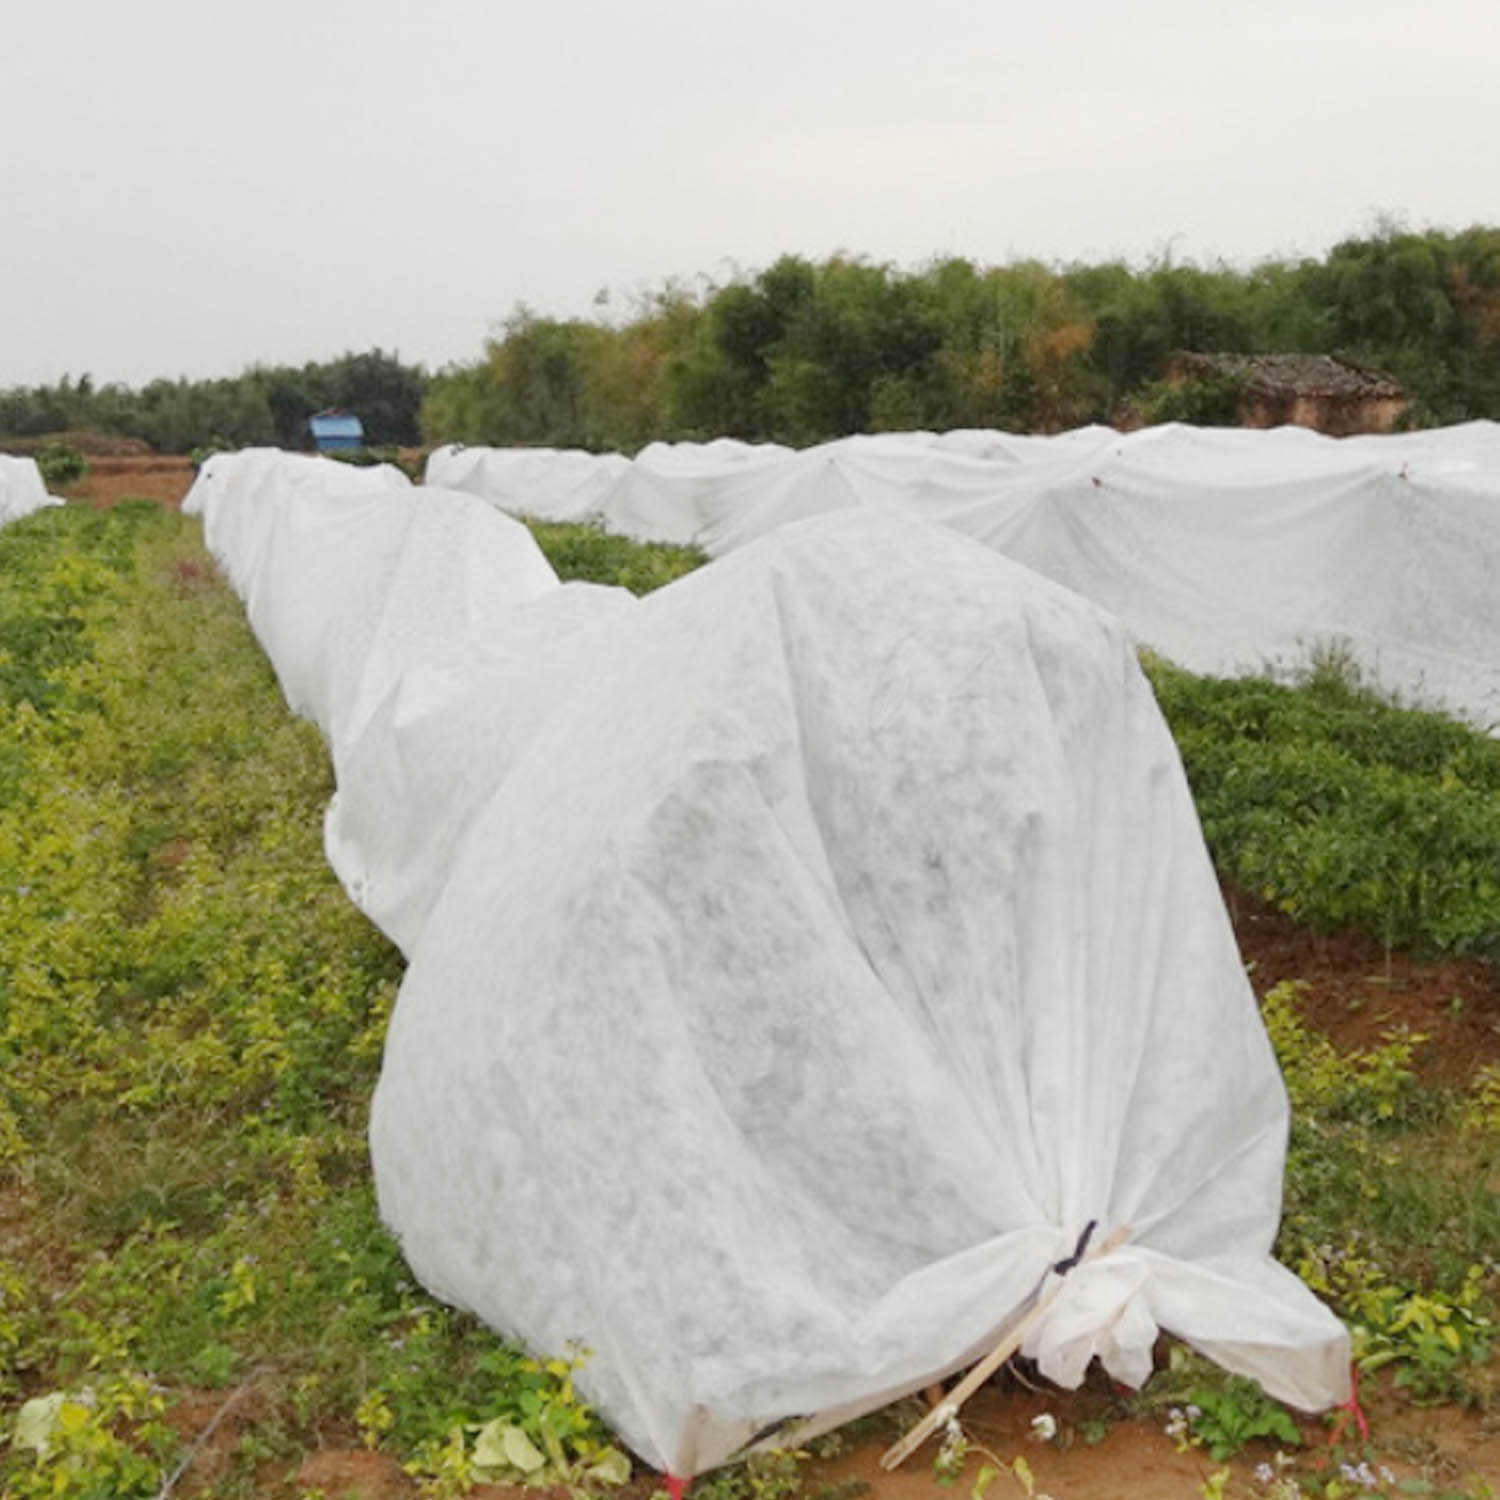 Behogar 2x5m Reusable Breathable Cold Frost Protection Plant Crop Cover Blanket For Garden Farm Courtyard Orchard